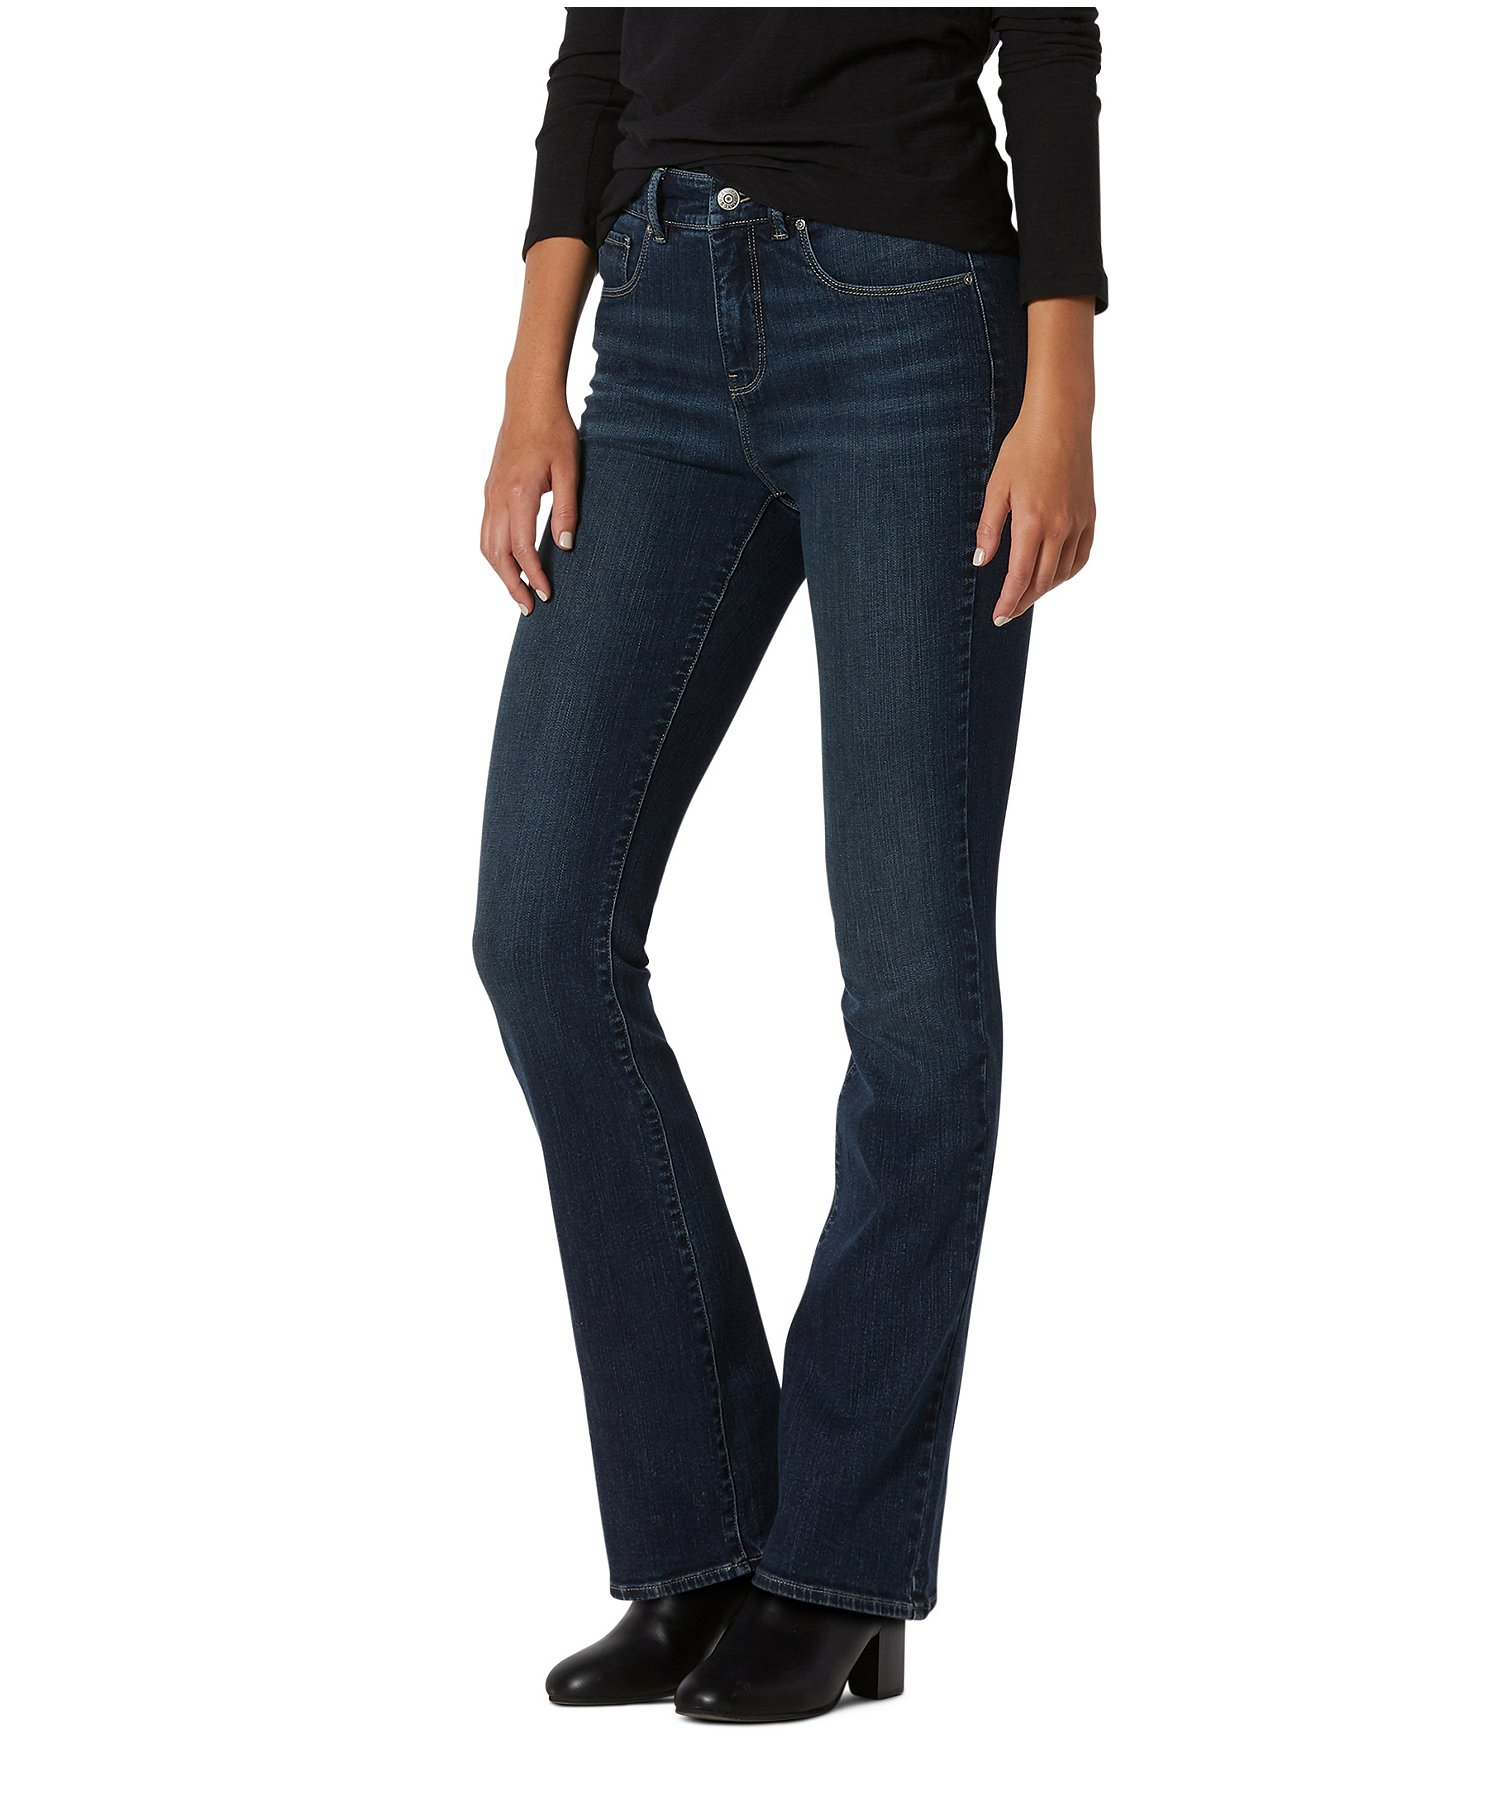 durable modeling low price sale pretty cheap WOMEN'S HANNA HIGH-RISE CURVE-TECH BARELY BOOT JEANS   Mark's